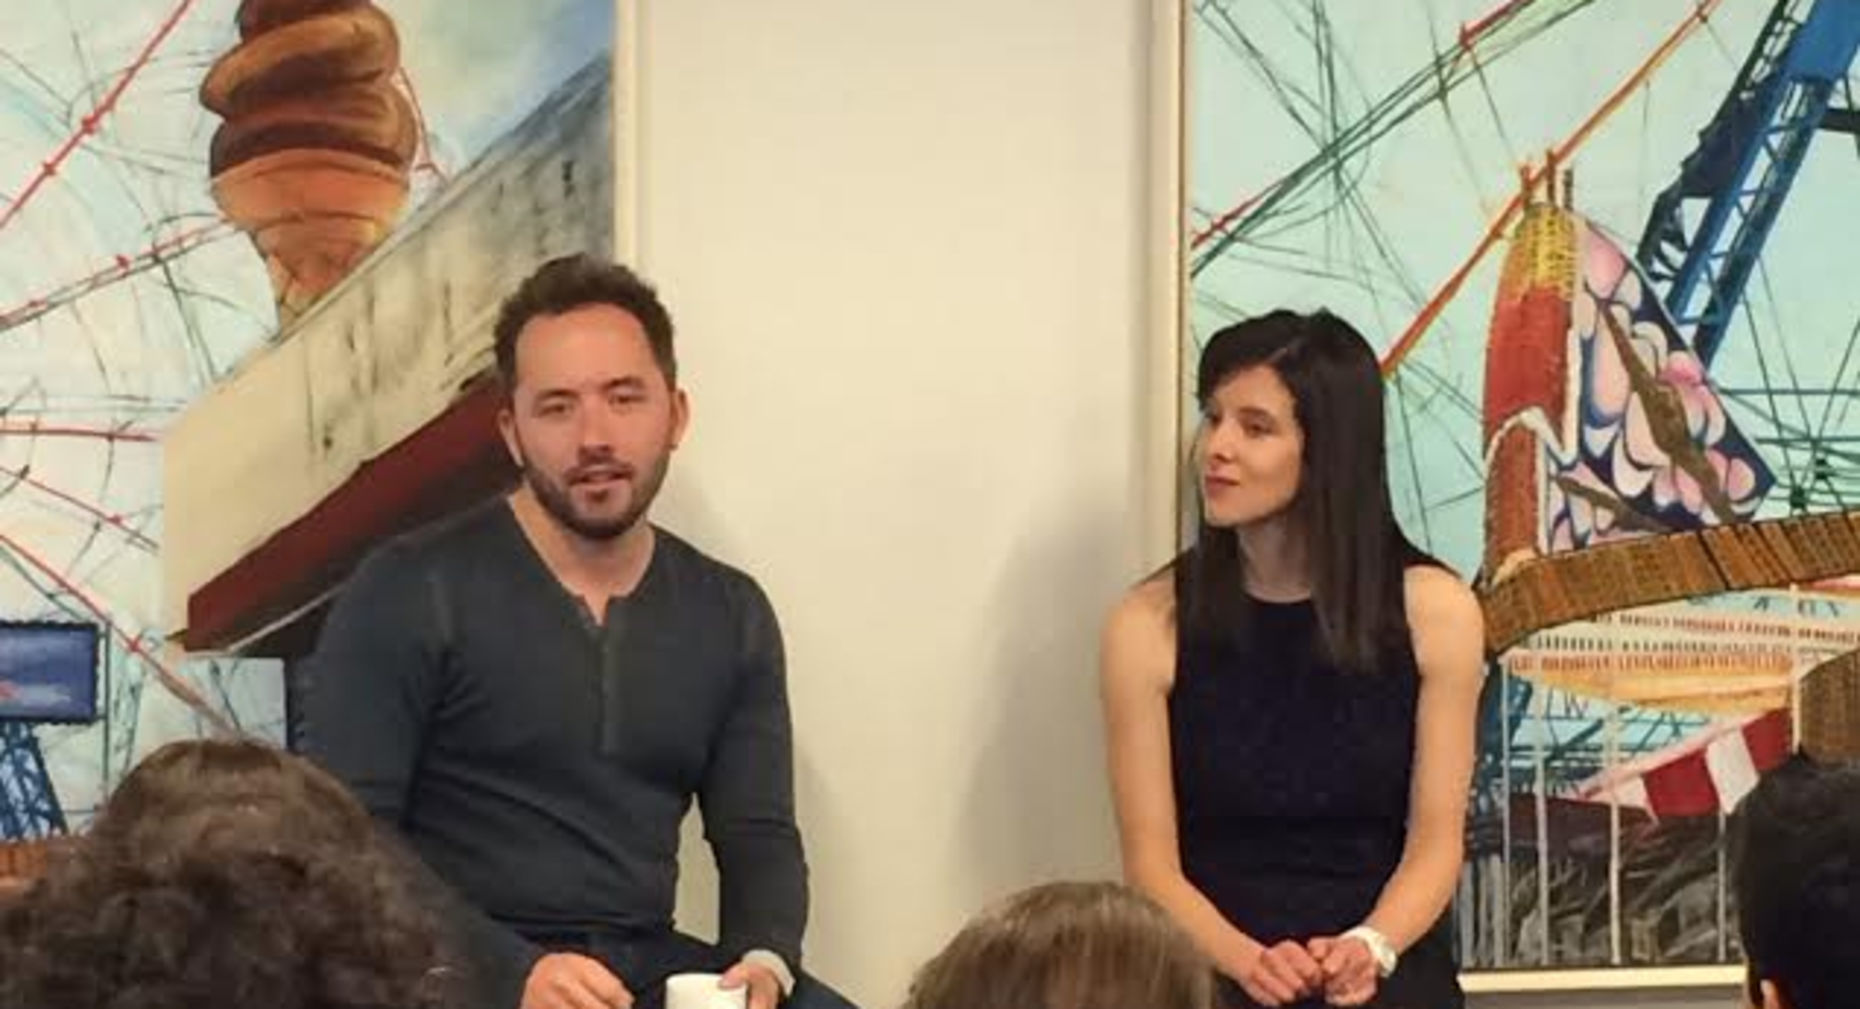 Drew Houston and Jessica Lessin at The Information's event in N.Y. Photo by Katie Benner.